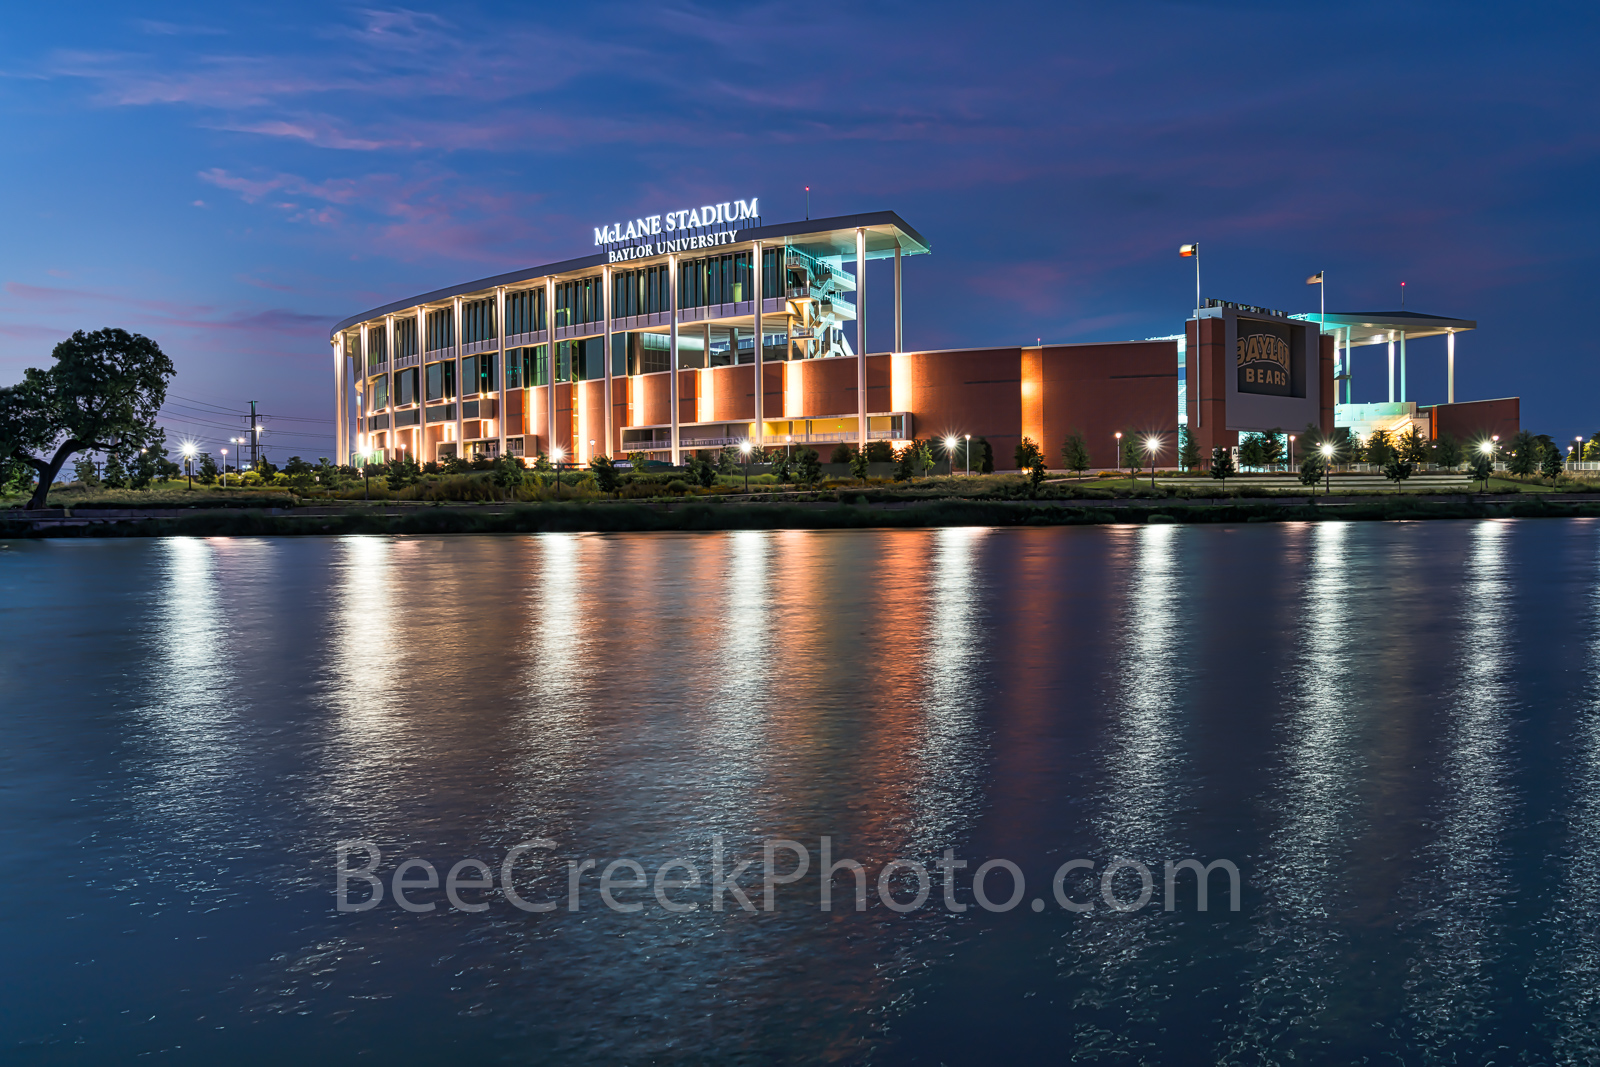 Waco, sunset, McLane Stadium, Baylor University, dusk, blue hour, Baylor Bears, stadium , University of Baylor, school, Brazos river, water, reflections, clouds, color, pink,, photo